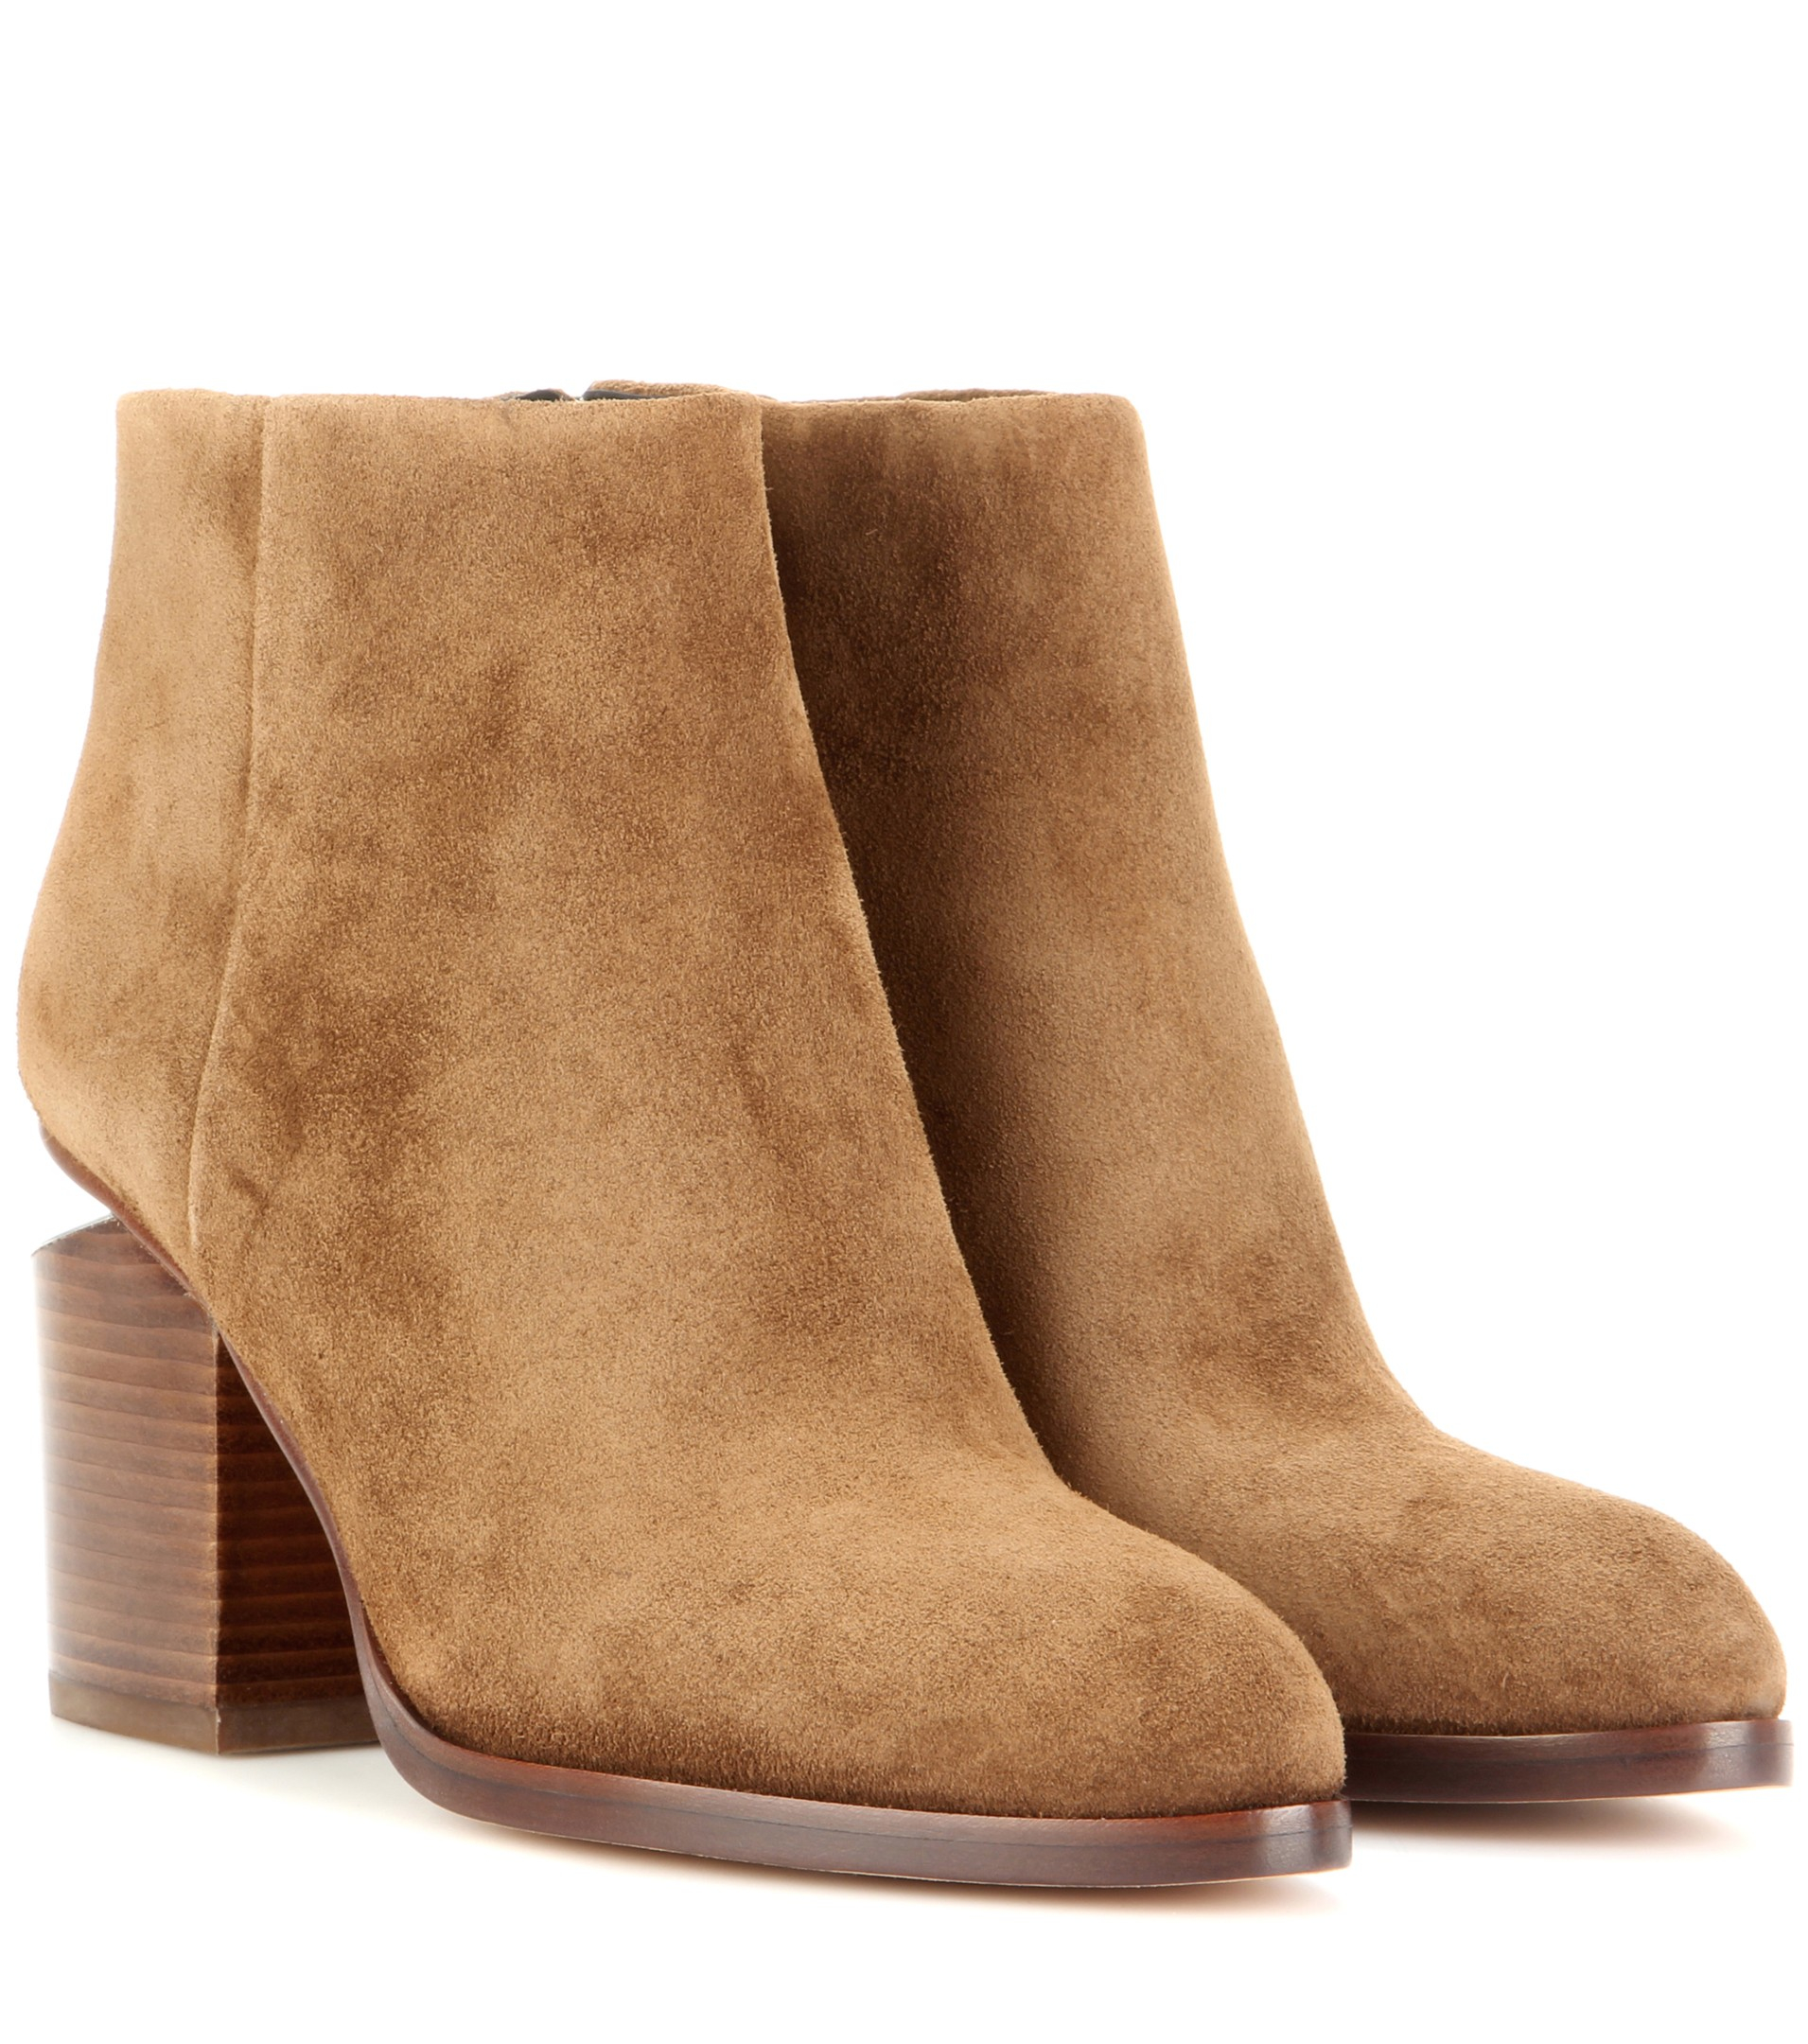 c6a90ddee1c0 Alexander Wang Gabi Suede Ankle Boots in Brown - Lyst